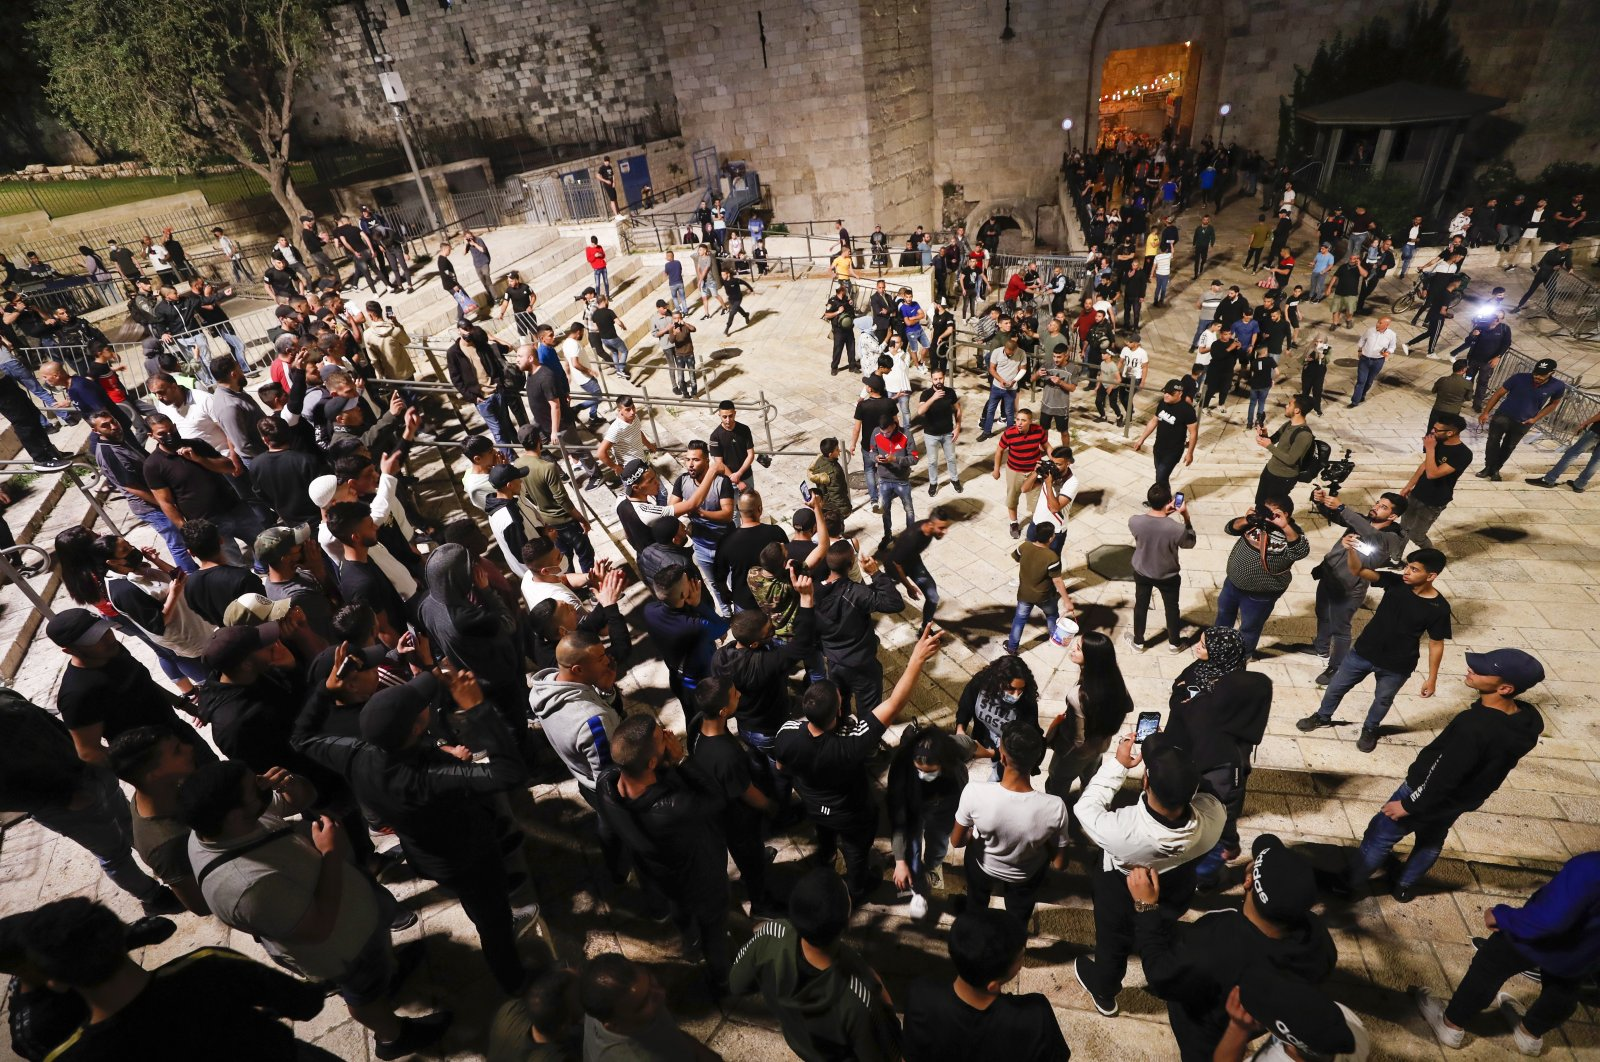 Palestinians celebrate after police removed the barricades blocking access and gatherings around the Damascus Gate area of the Old City in Jerusalem, Israel, April 25, 2021. (EPA Photo)